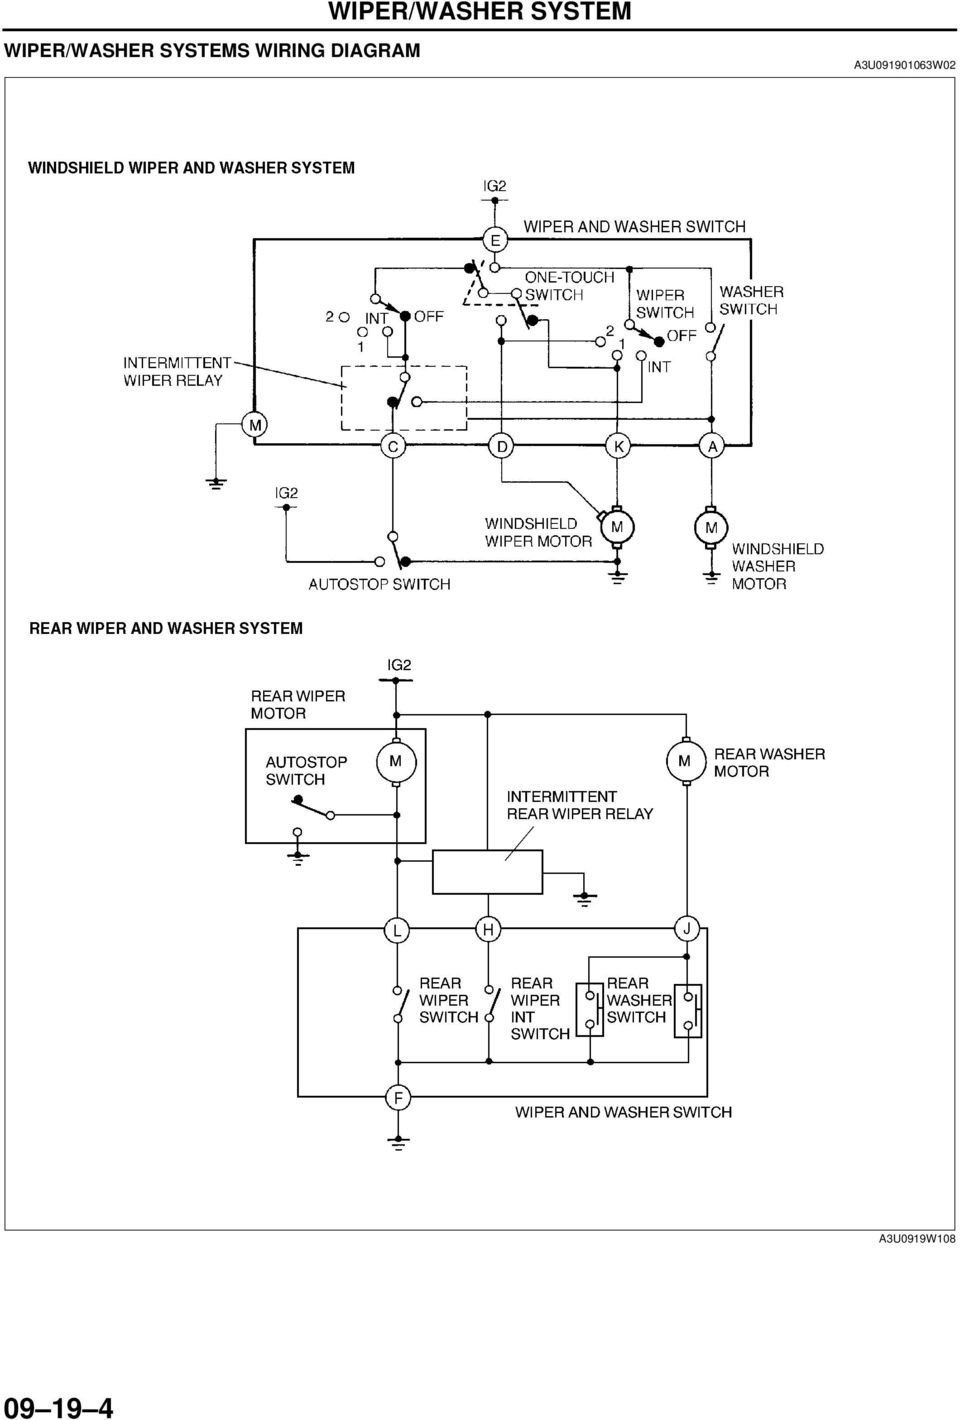 09 19 Wiper Washer System Pdf Smart Wiring Diagram